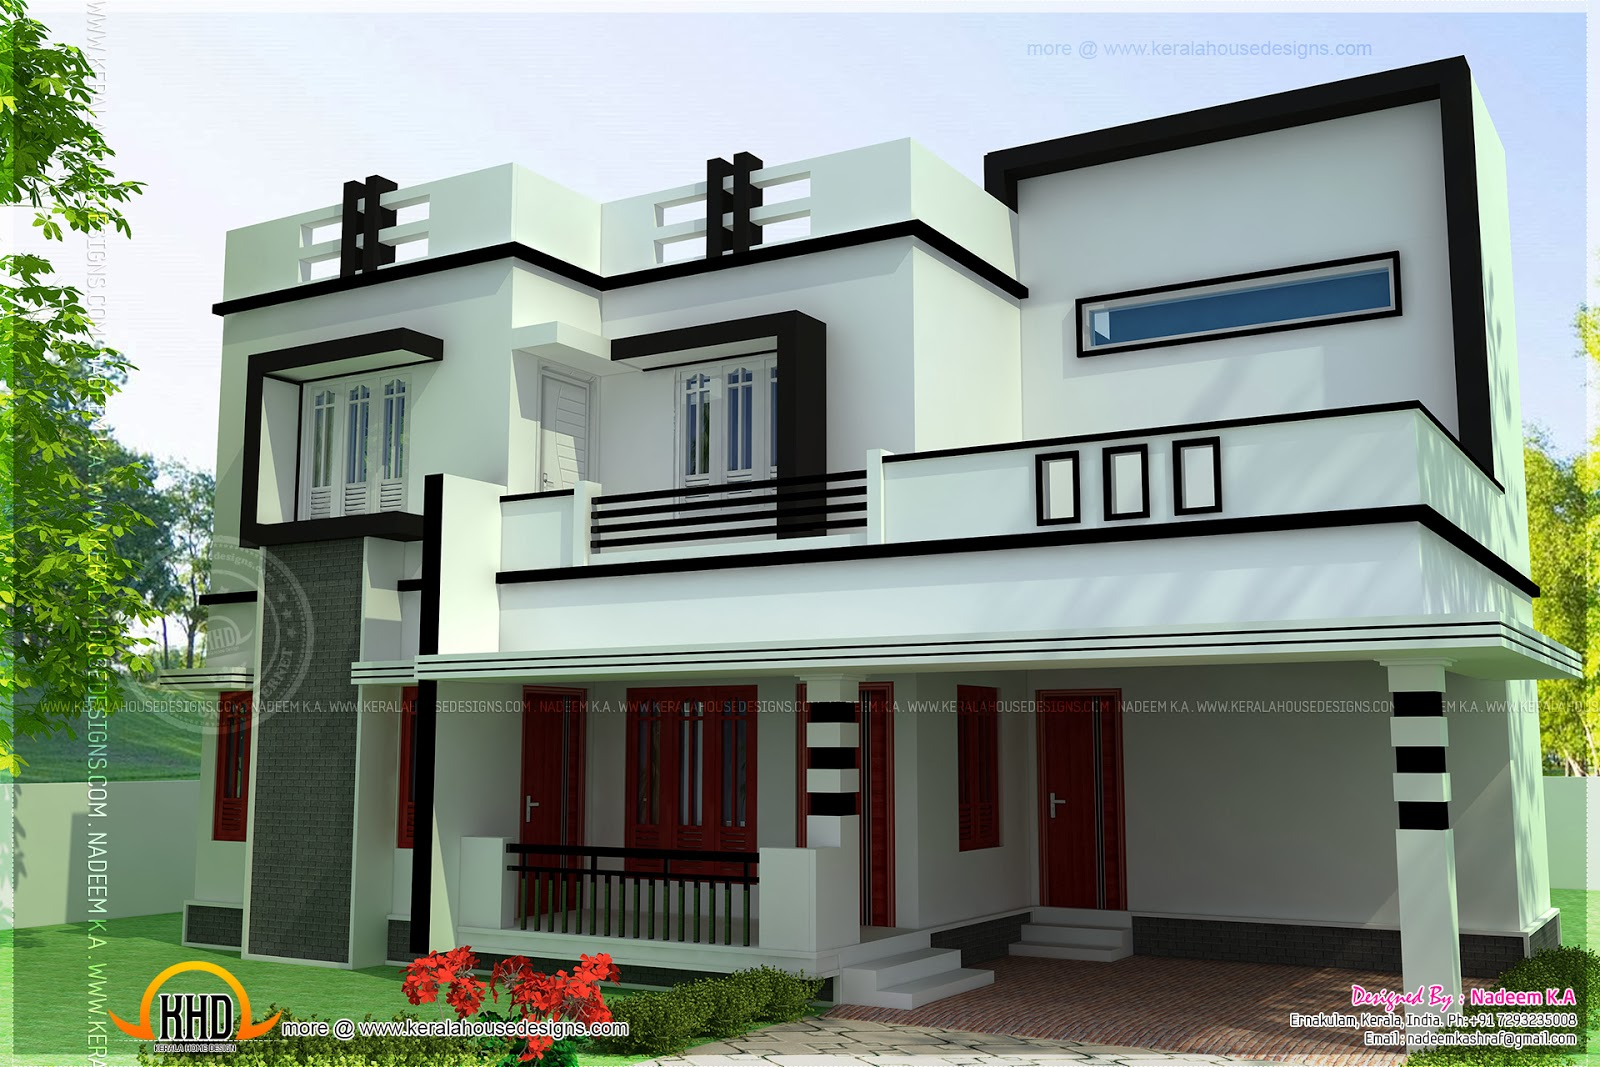 Flat roof 4 bedroom modern house kerala home design and Modern roof design